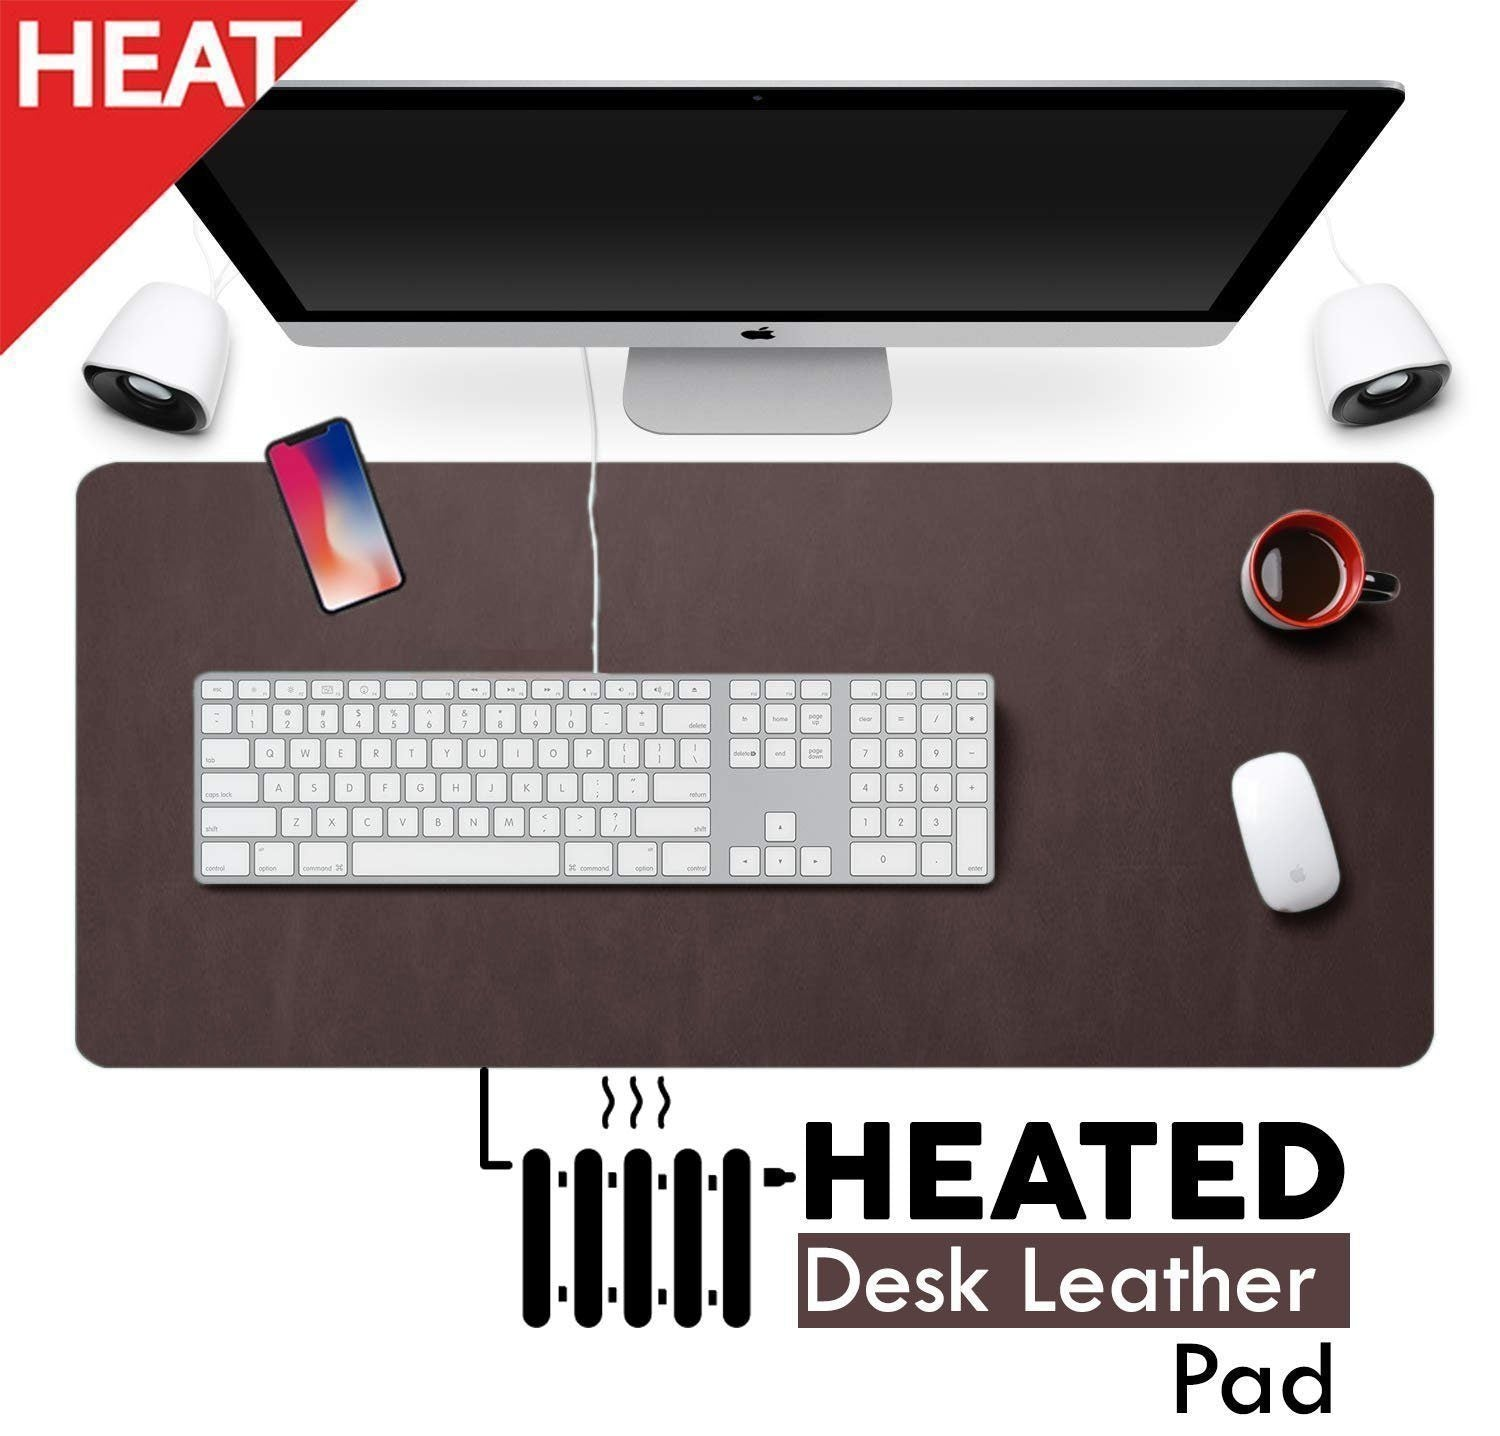 Heated Desk Leather Pad